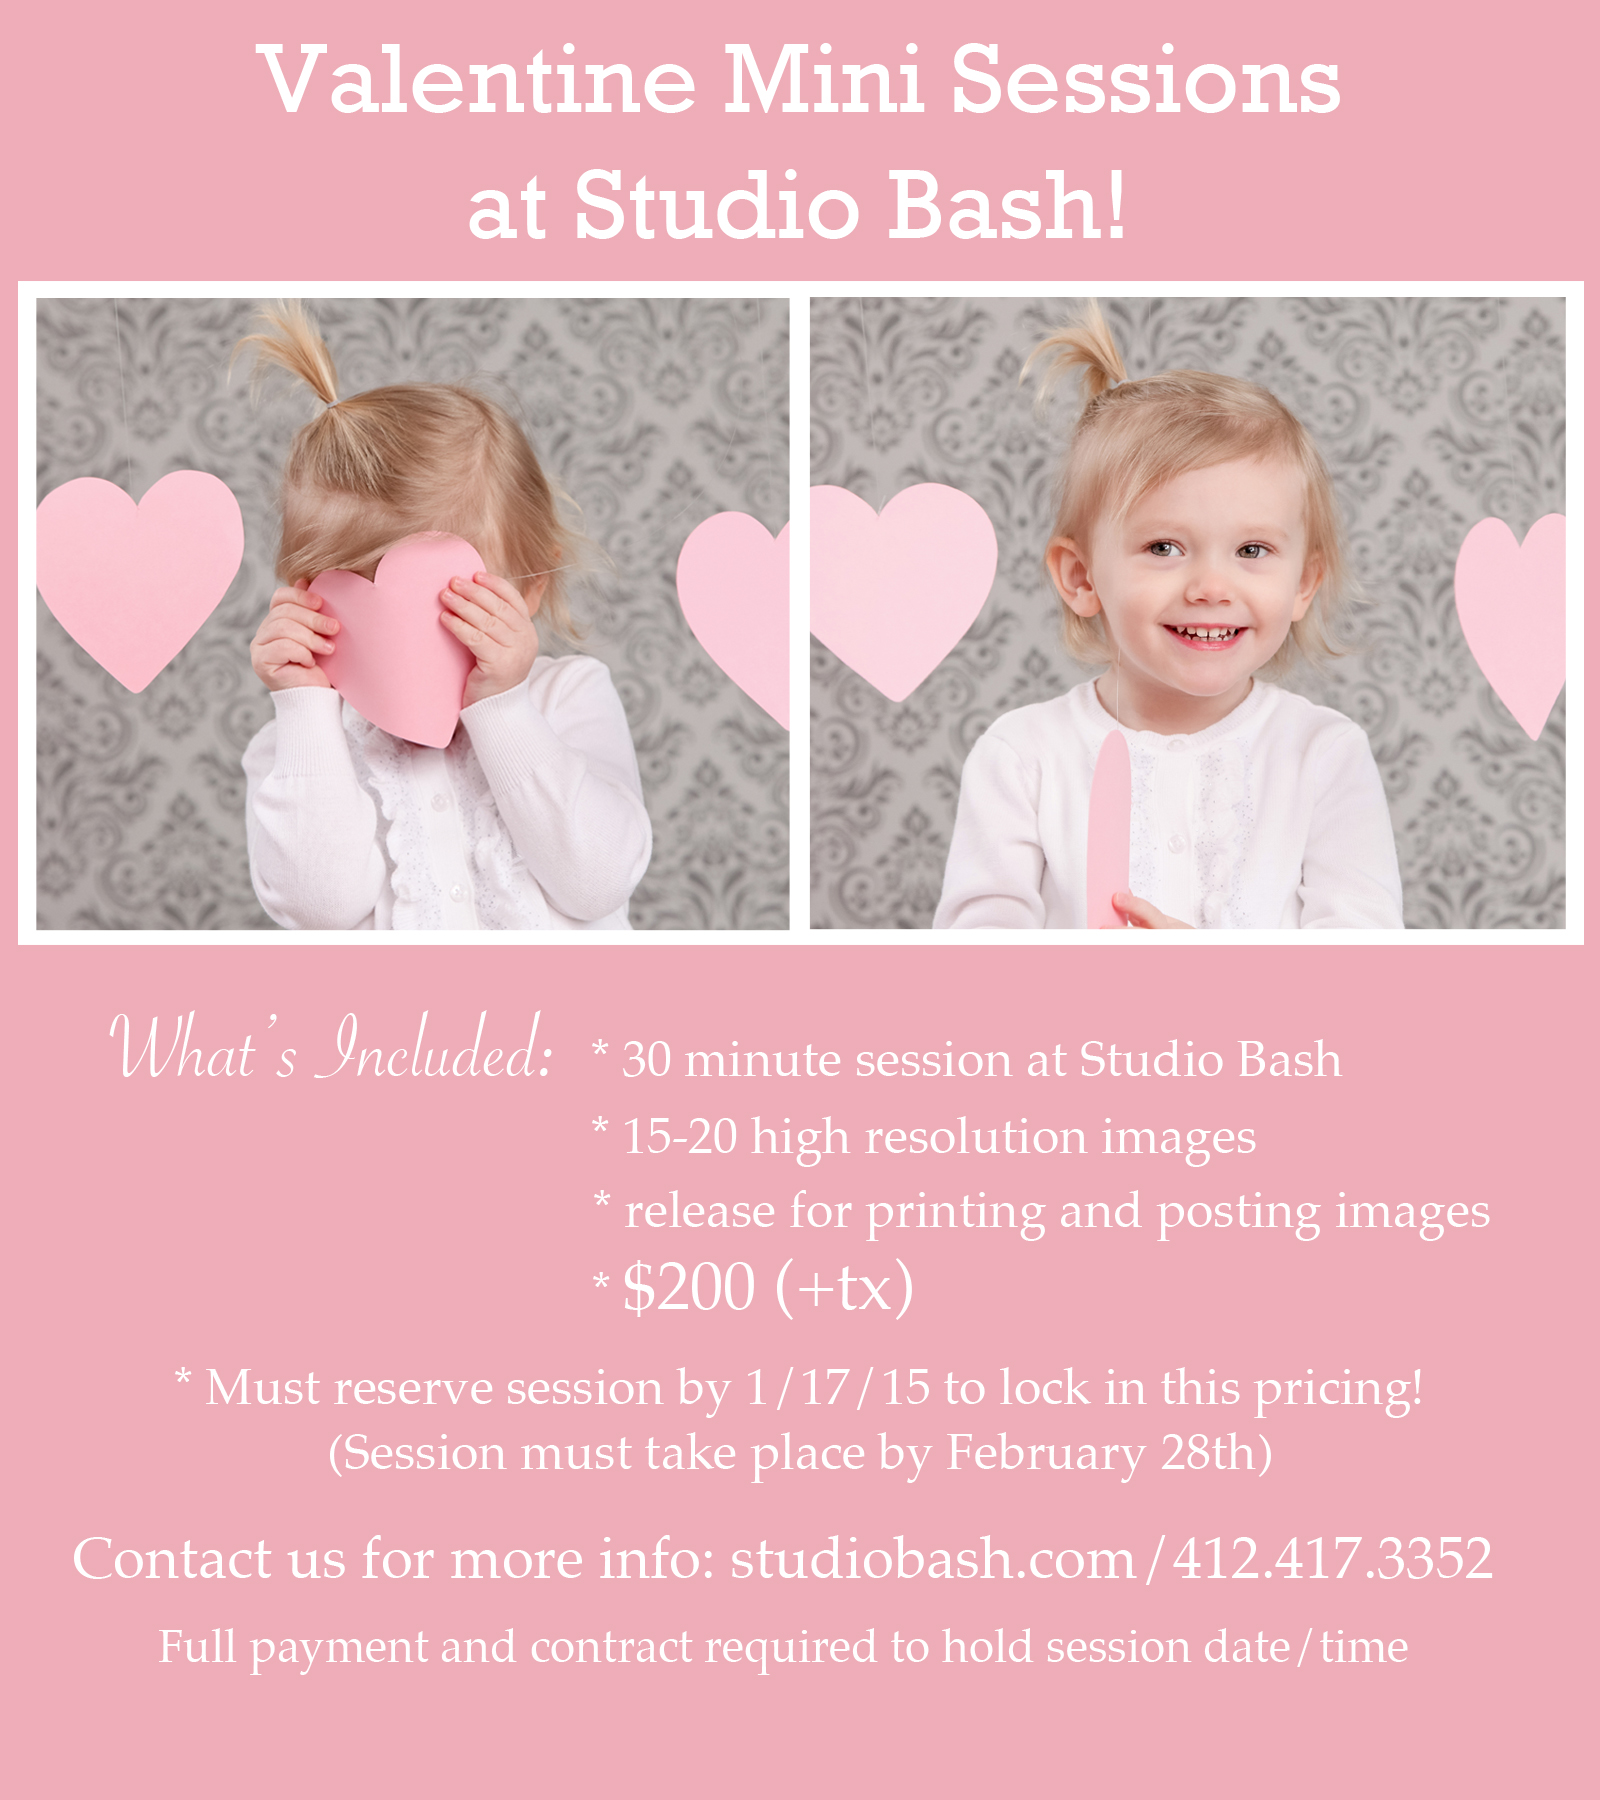 Valentine Mini Sessions at Studio Bash!